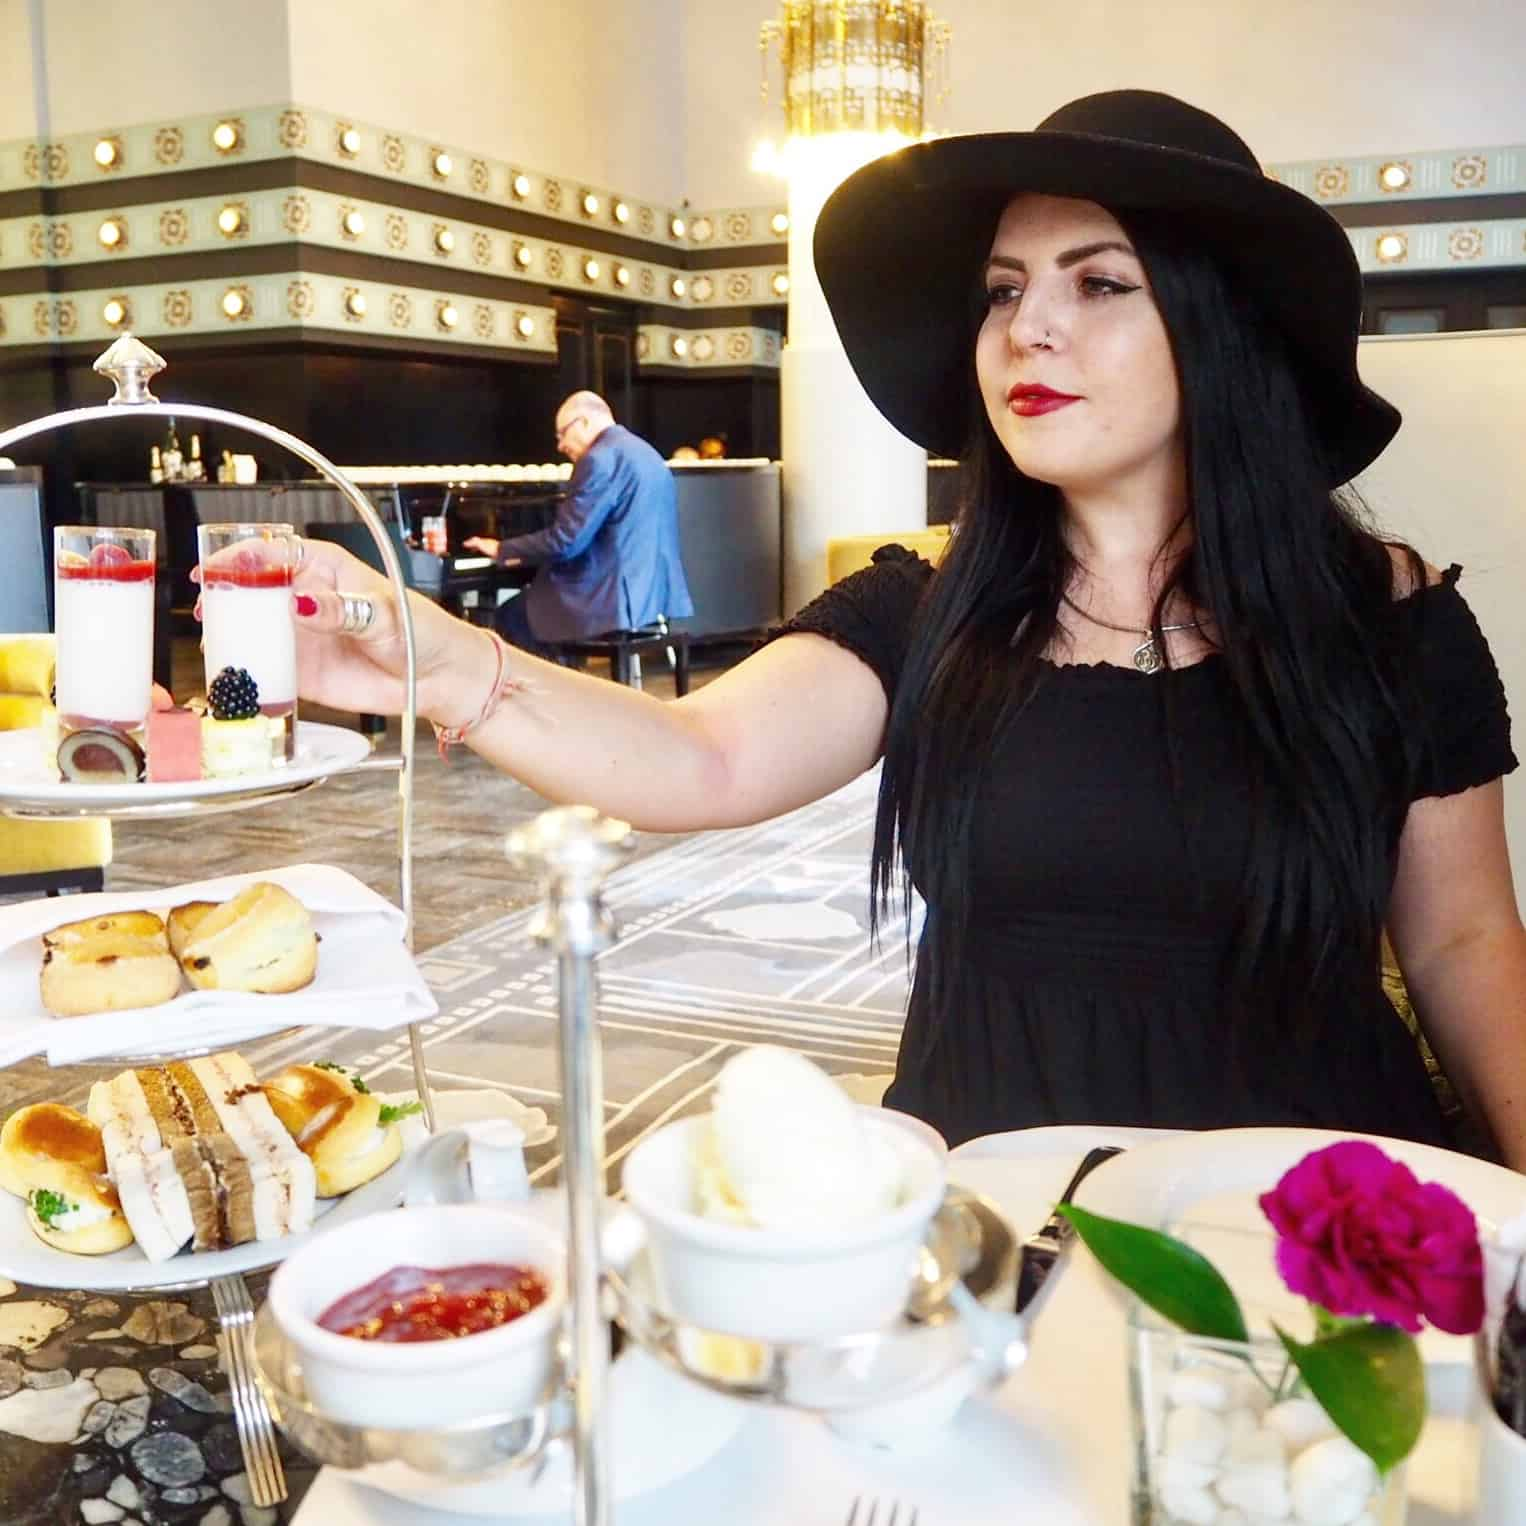 afternoon tea at hotel bristol in warsaw